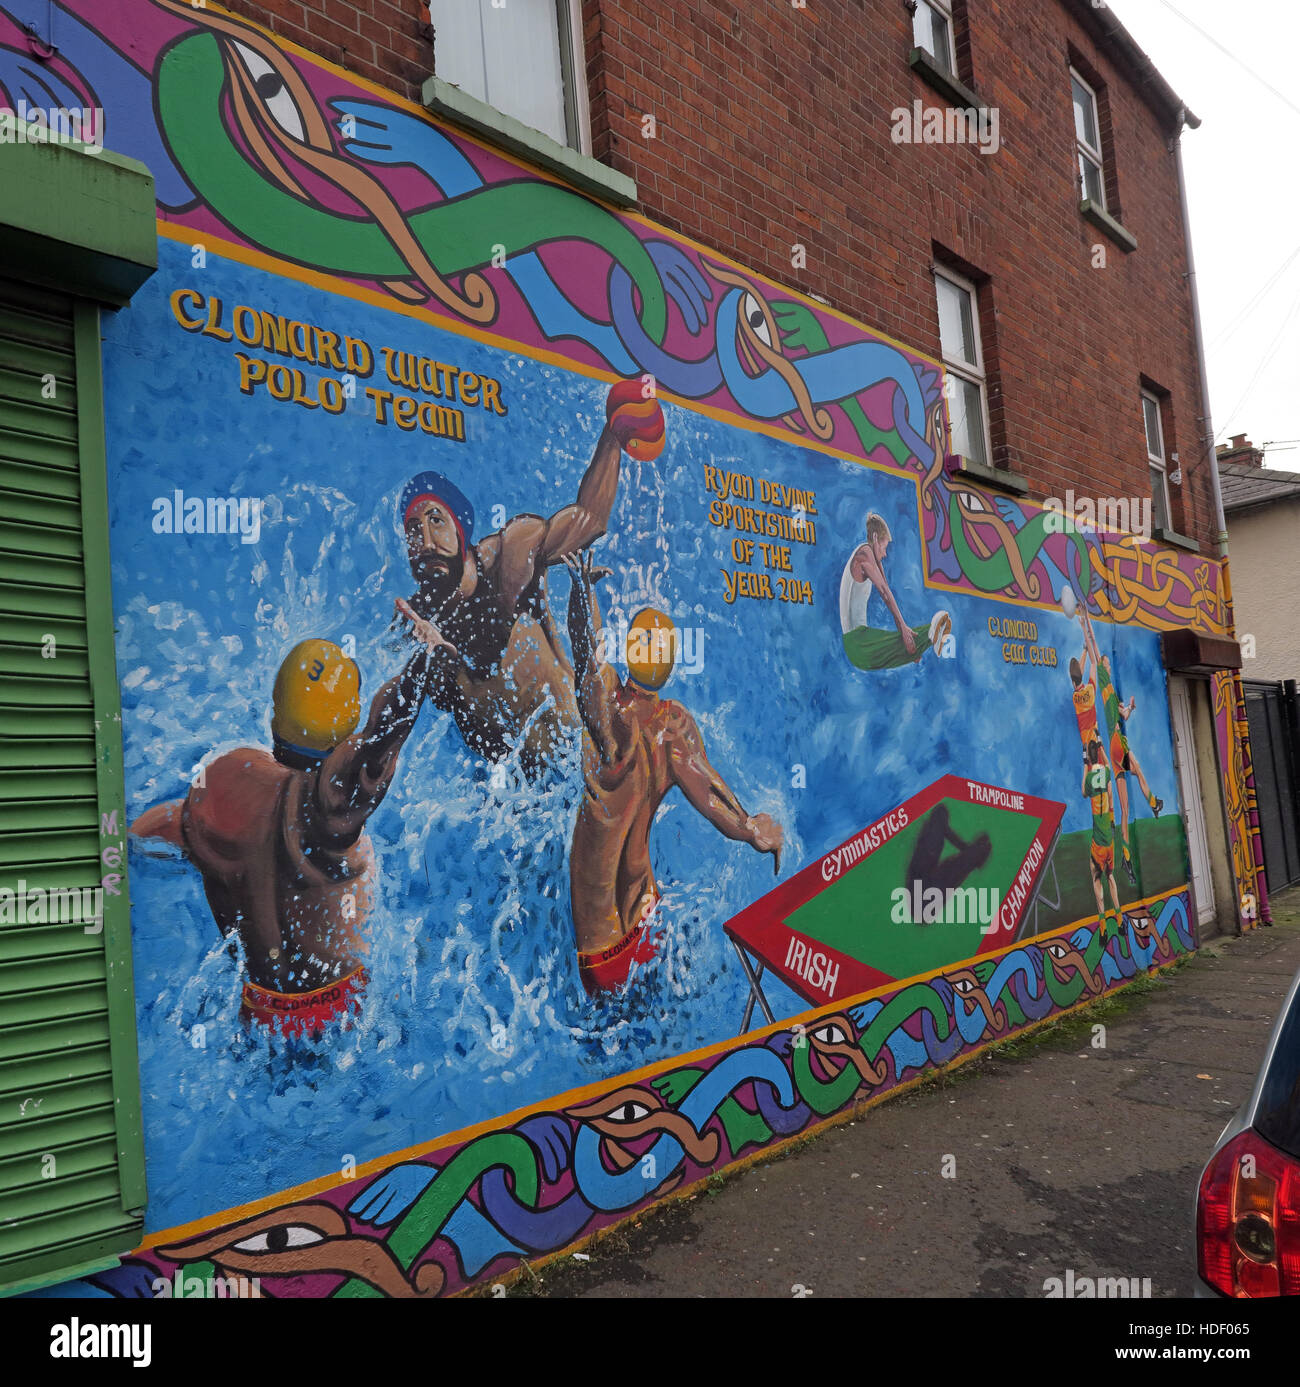 Road,painting,graffiti,resistance,IRA,peace,Northern Ireland,NI,UK,St,street,Eire,Irish,Republic,Irish Republic,conflict,Irish Republican Army,Political Change,gable,end,gable end,Irish,Sport,Clonard,Water,Polo,Team,Clonard,Water Polo,Team,GoTonySmith,@HotpixUK,Tony,Smith,UK,GB,Great,Britain,United,Kingdom,Irish,British,Ireland,problem,with,problem with,issue with,NI,Northern,Northern Ireland,Belfast,City,Centre,Art,Artists,the,troubles,The Troubles,Good Friday Agreement,Peace,honour,painting,wall,walls,tribute,republicanism,Fight,Justice,West,Beal,feirste,martyrs,social,tour,tourism,tourists,urban,six,counties,6,backdrop,county,Antrim,occupation,good,Friday,agreement,peace,reconciliation,IRA,terror,terrorists,genocide,Belfast streets,catholic,community,catholics,Buy Pictures of,Buy Images Of,Images of,Stock Images,Tony Smith,United Kingdom,Great Britain,British Isles,republican cause,Belfast Catholic Community